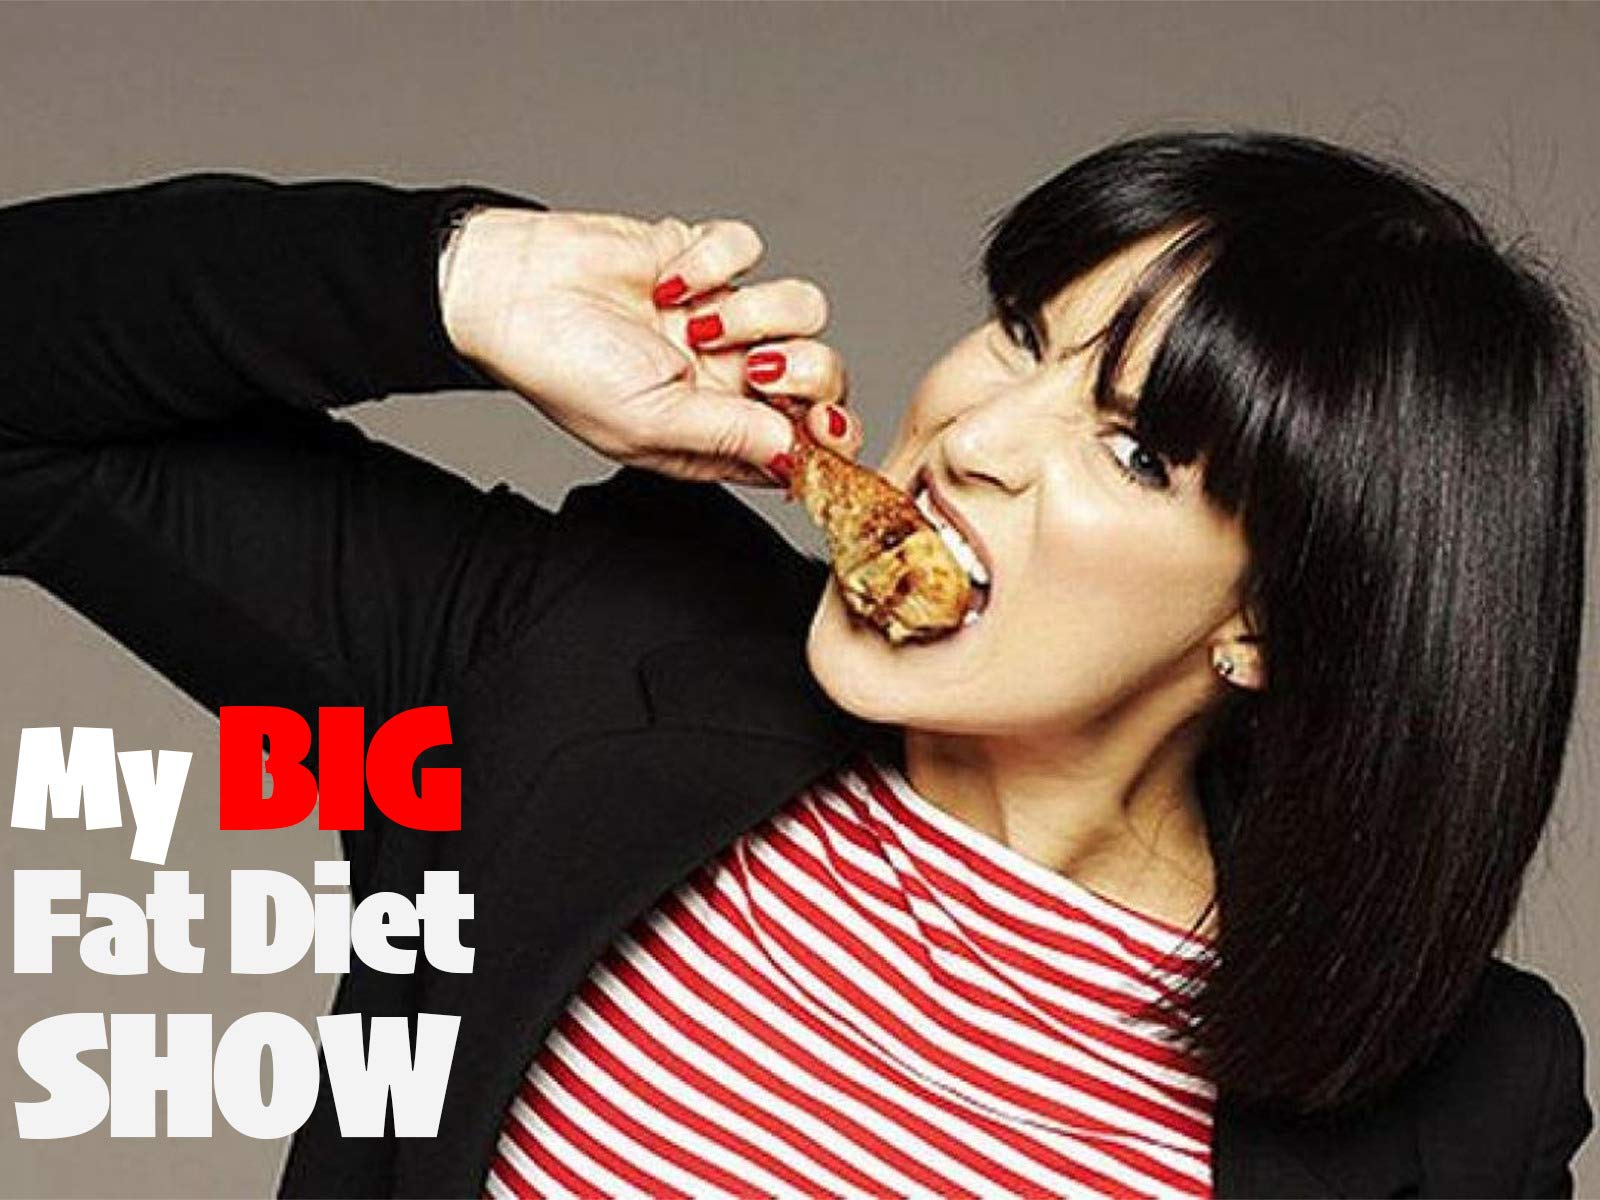 My Big Fat Diet Show